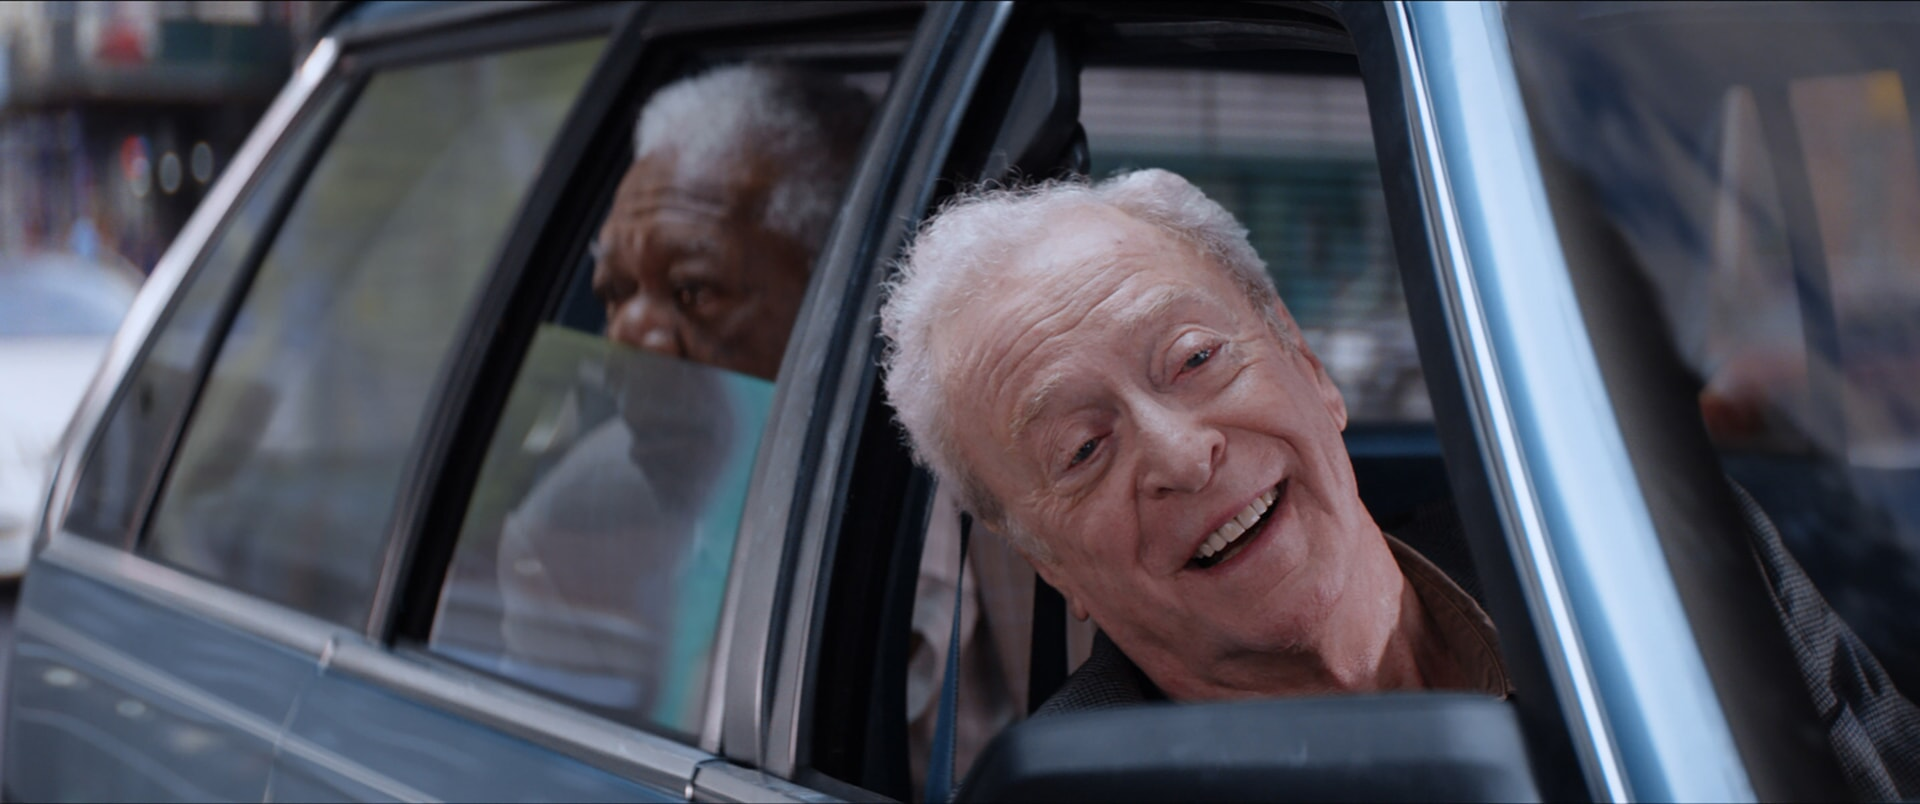 "MORGAN FREEMAN as Willie Davis and MICHAEL CAINE as Joe Harding in the New Line Cinema and Village Roadshow comedy ""GOING IN STYLE,"" a Warner Bros. Pictures release."